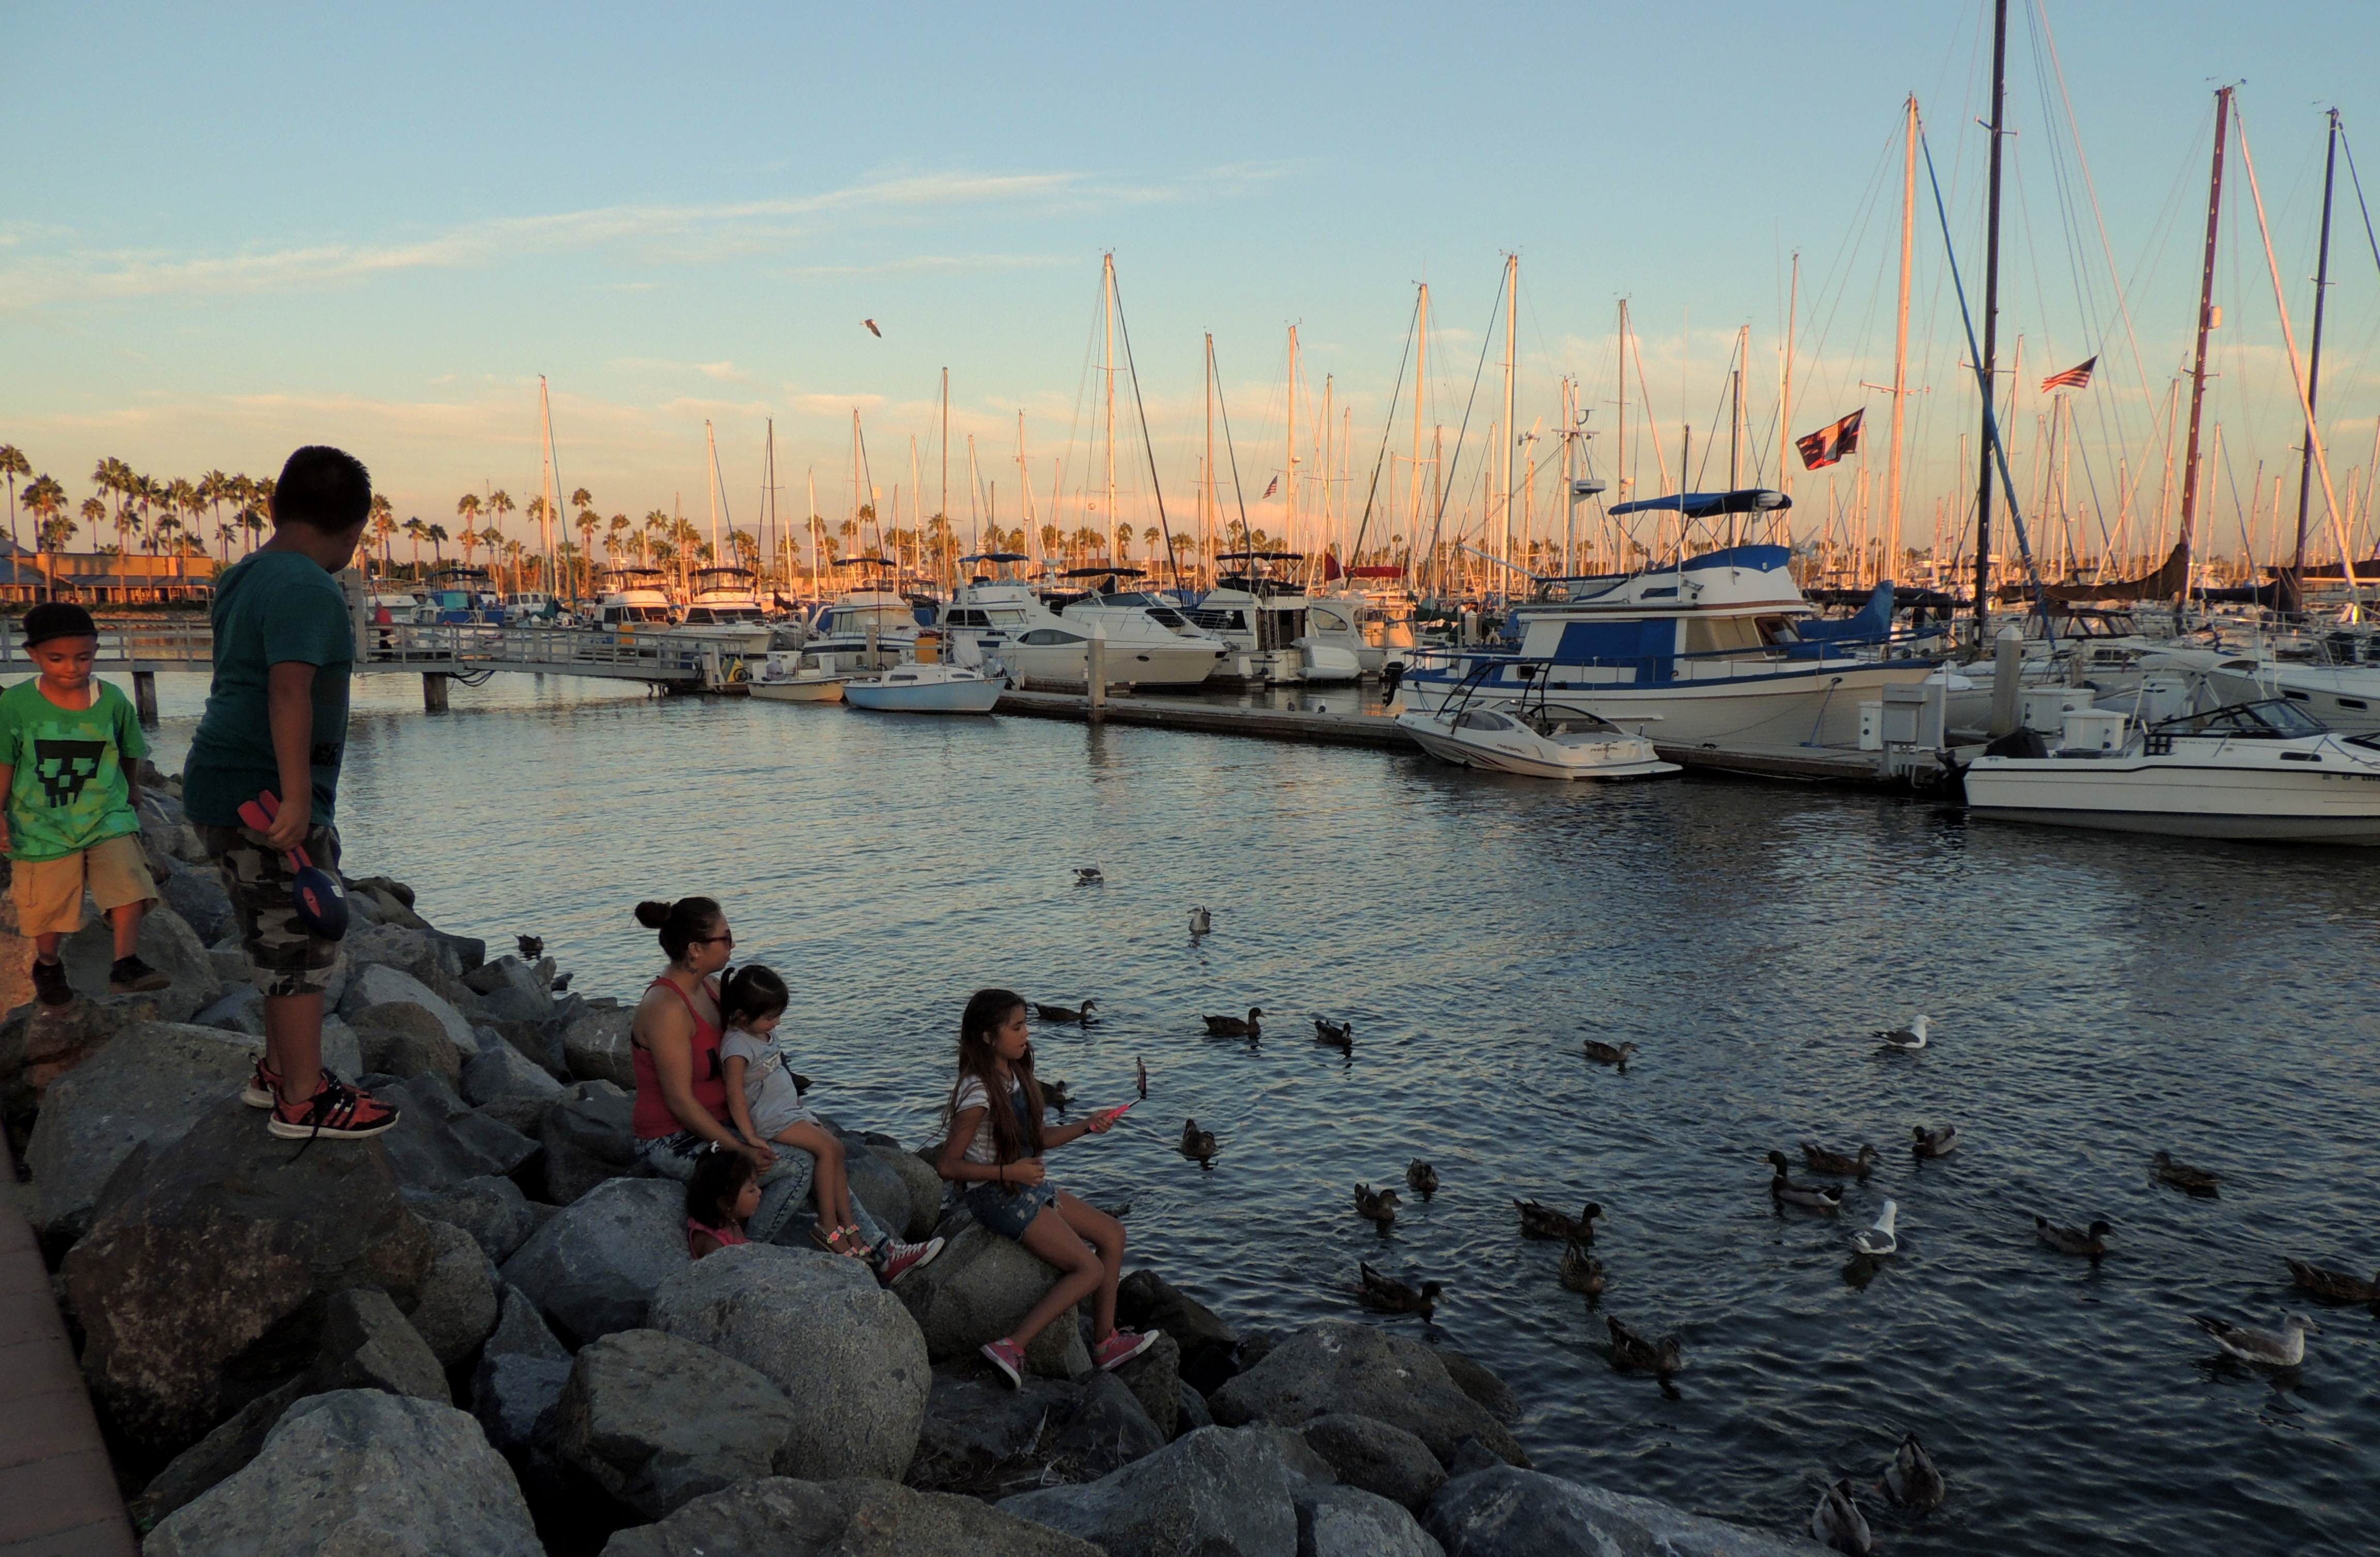 Feeding the gulls and ducks are favorite activities for families and visitors at the J Street Marina in Chula Vista